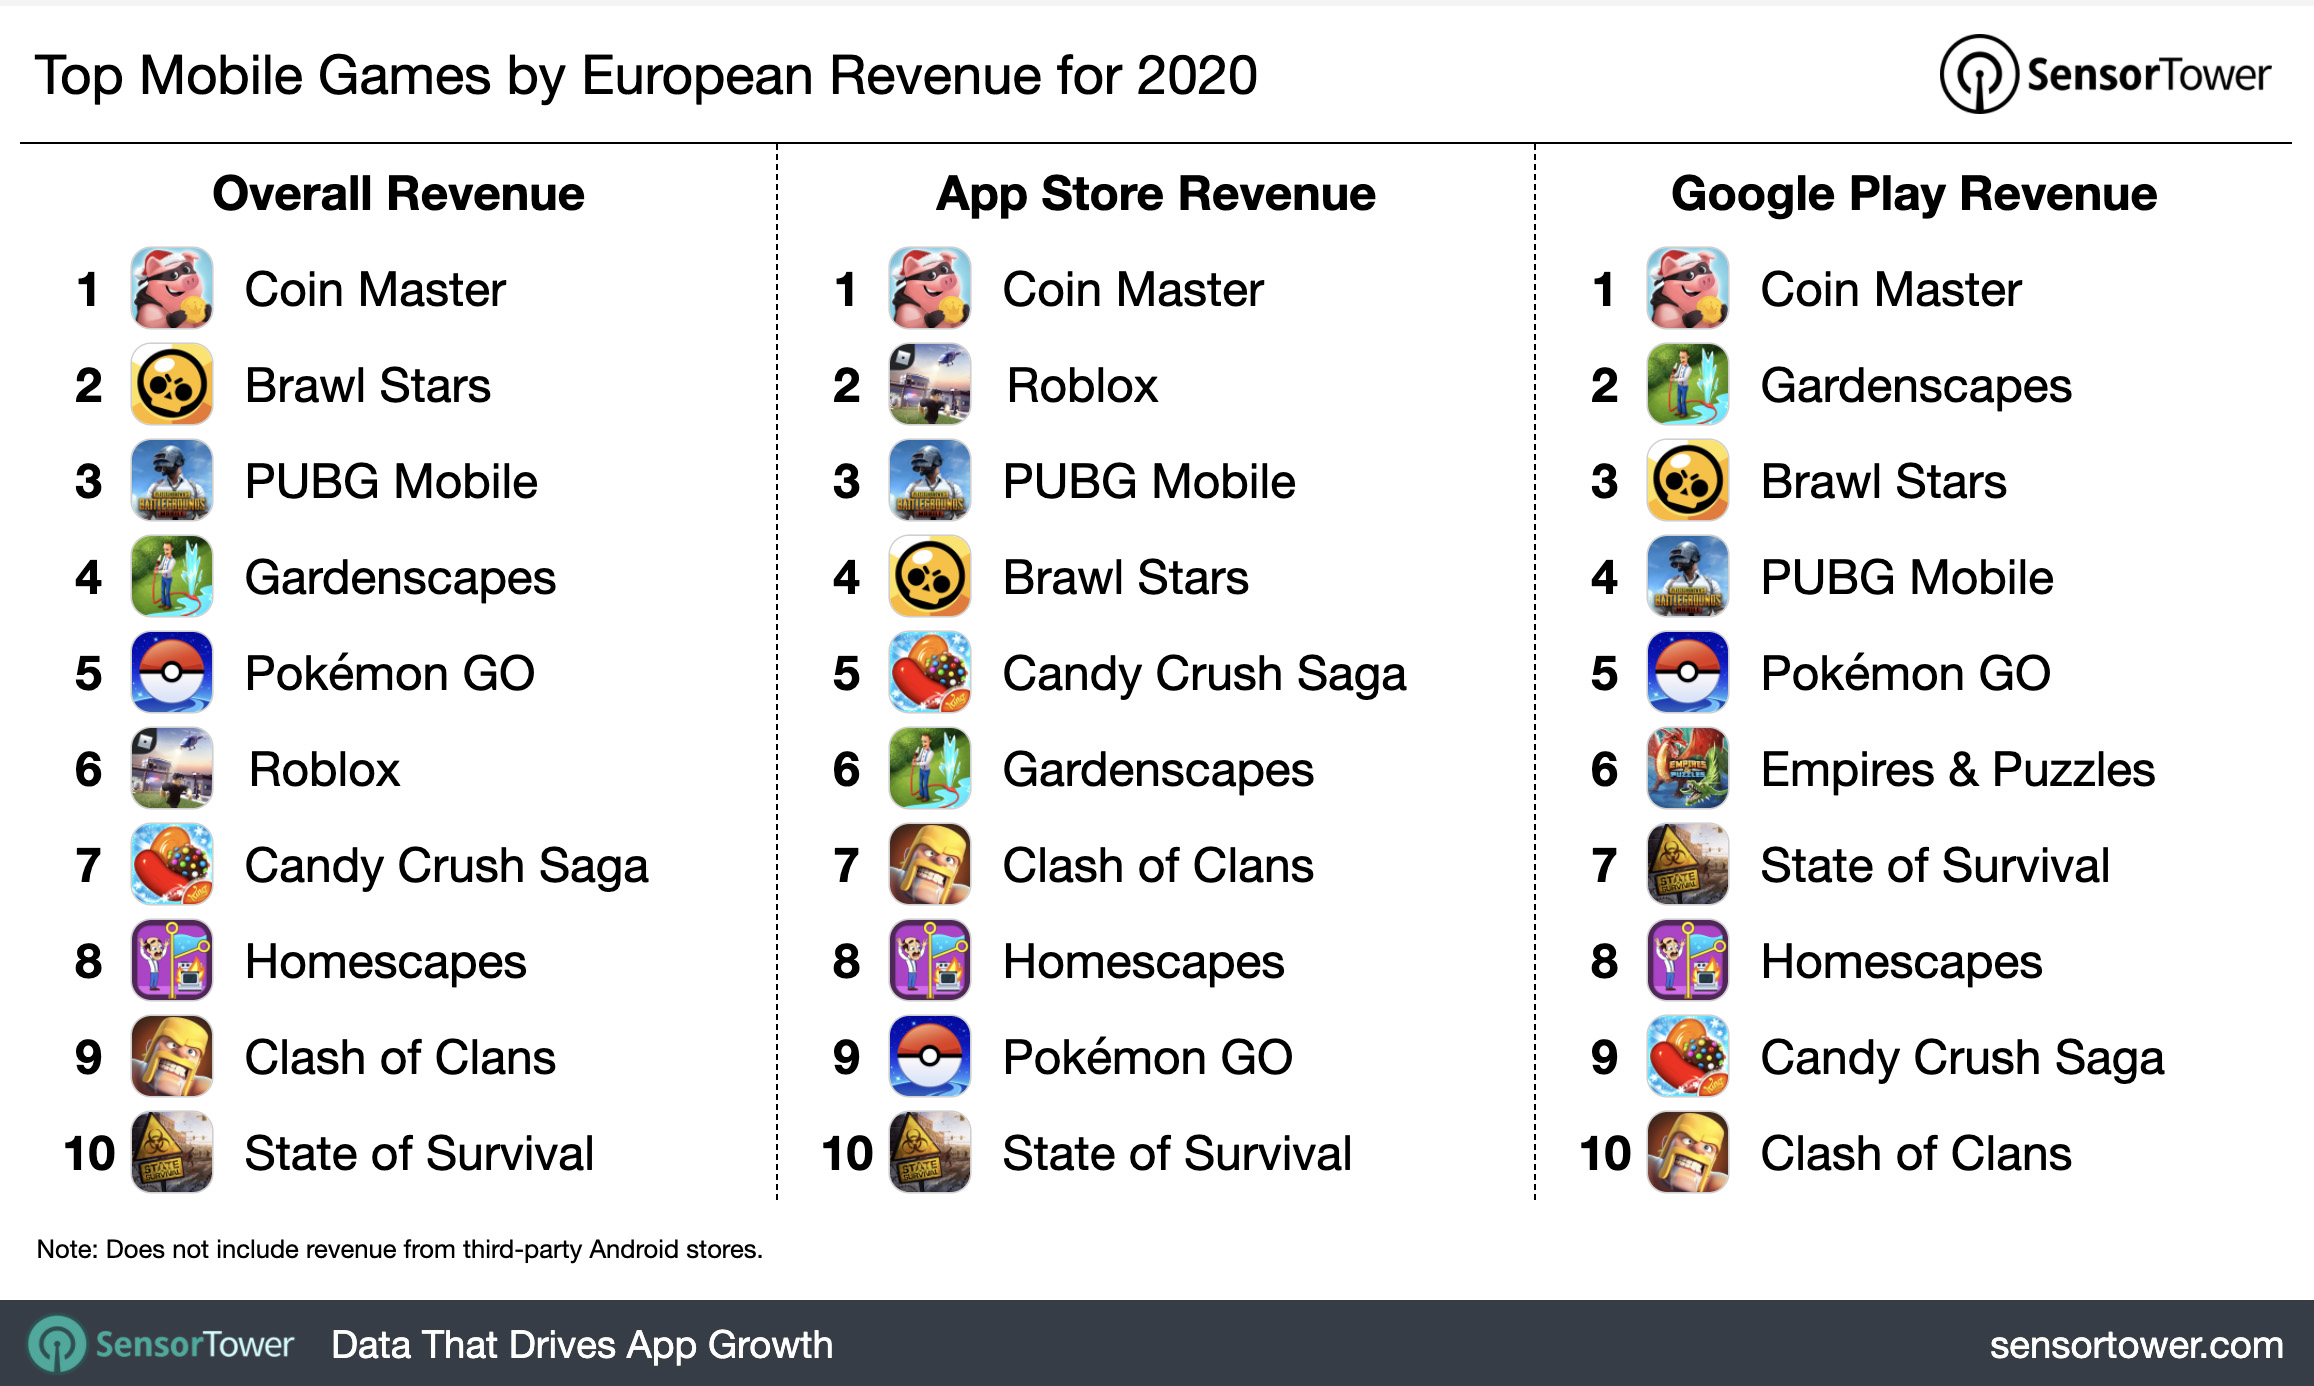 Top Mobile Games by European Revenue for 2020